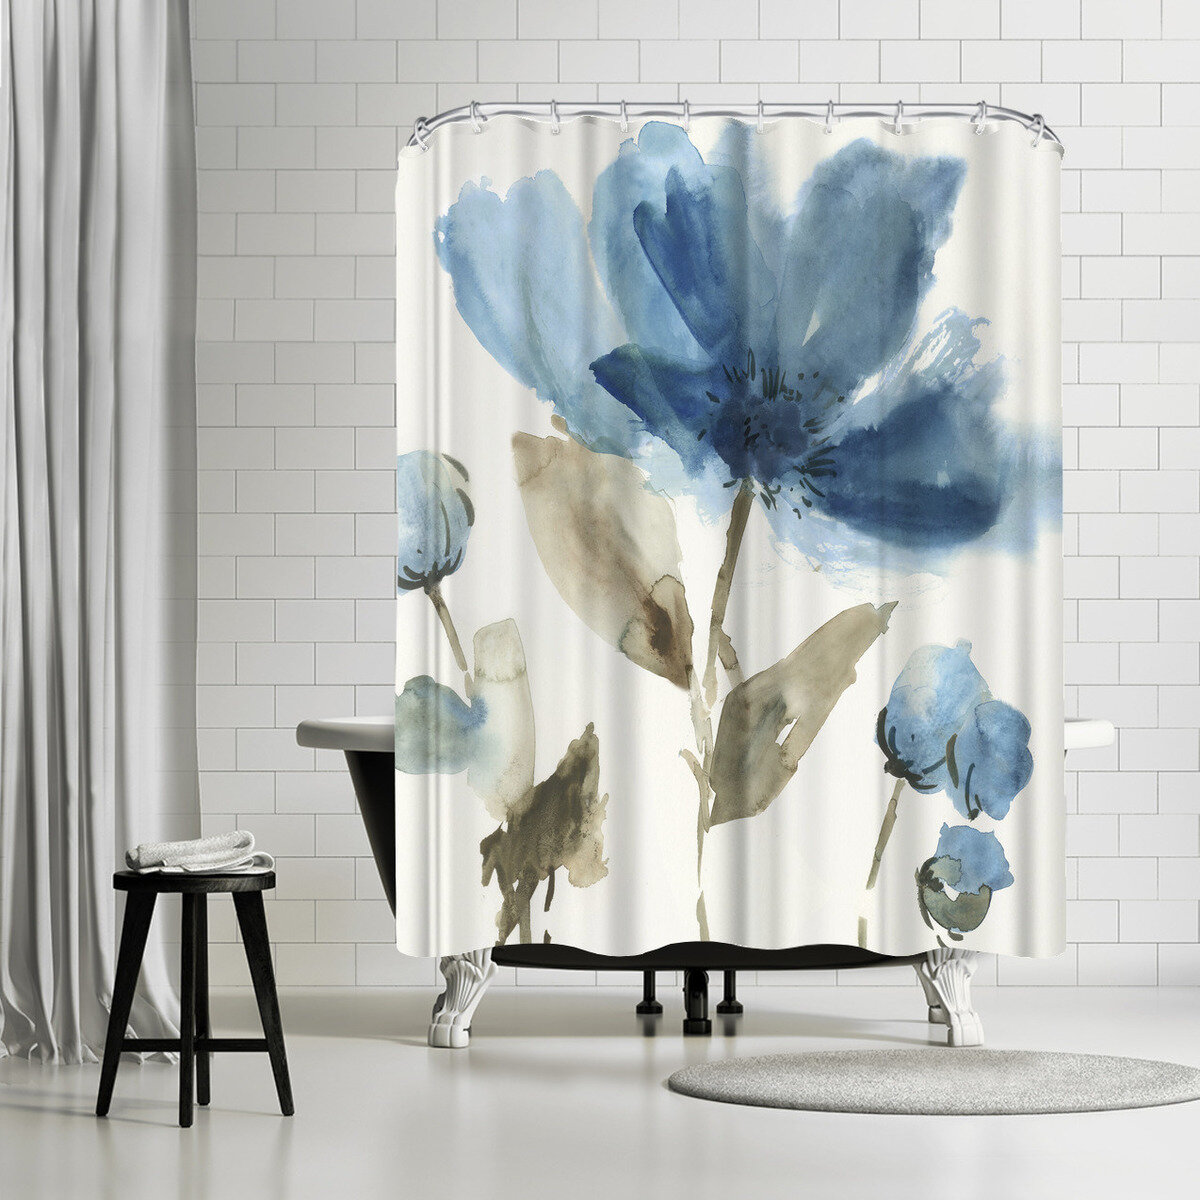 East Urban Home Pi Creative Art Morning Ii Single Shower Curtain Wayfair